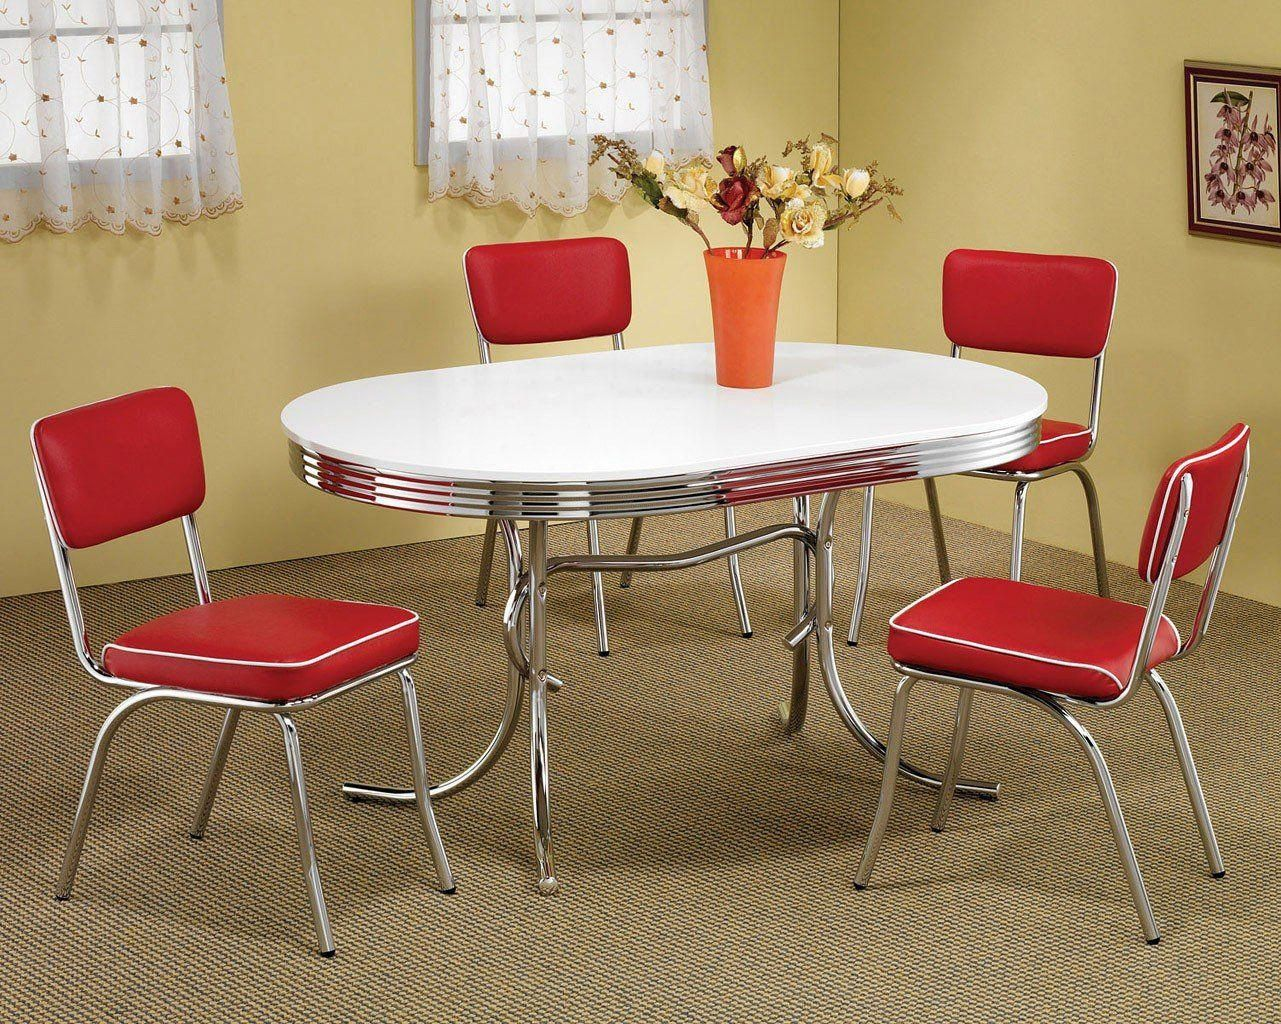 Retro Dining Room Set W Red Chairs Retro Dining Rooms Retro